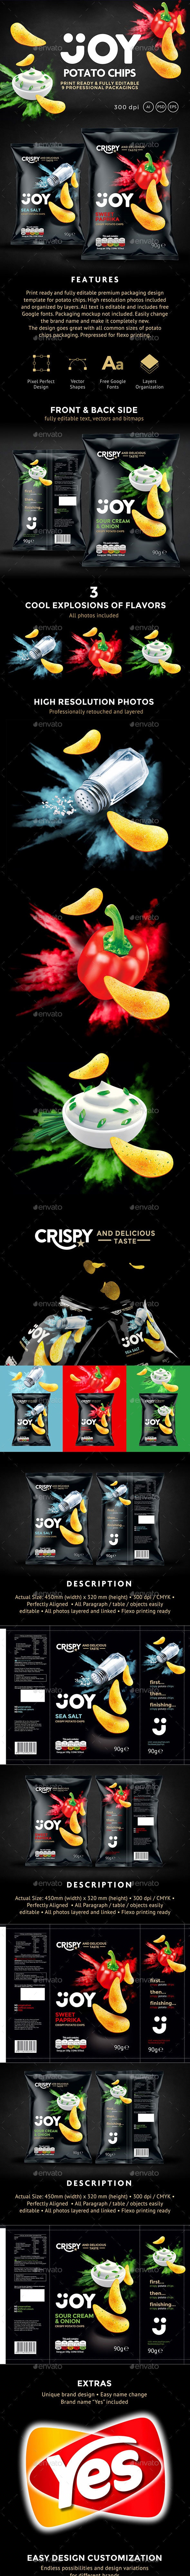 9 Potato Chips Packaging Design Templates - Packaging Print Templates